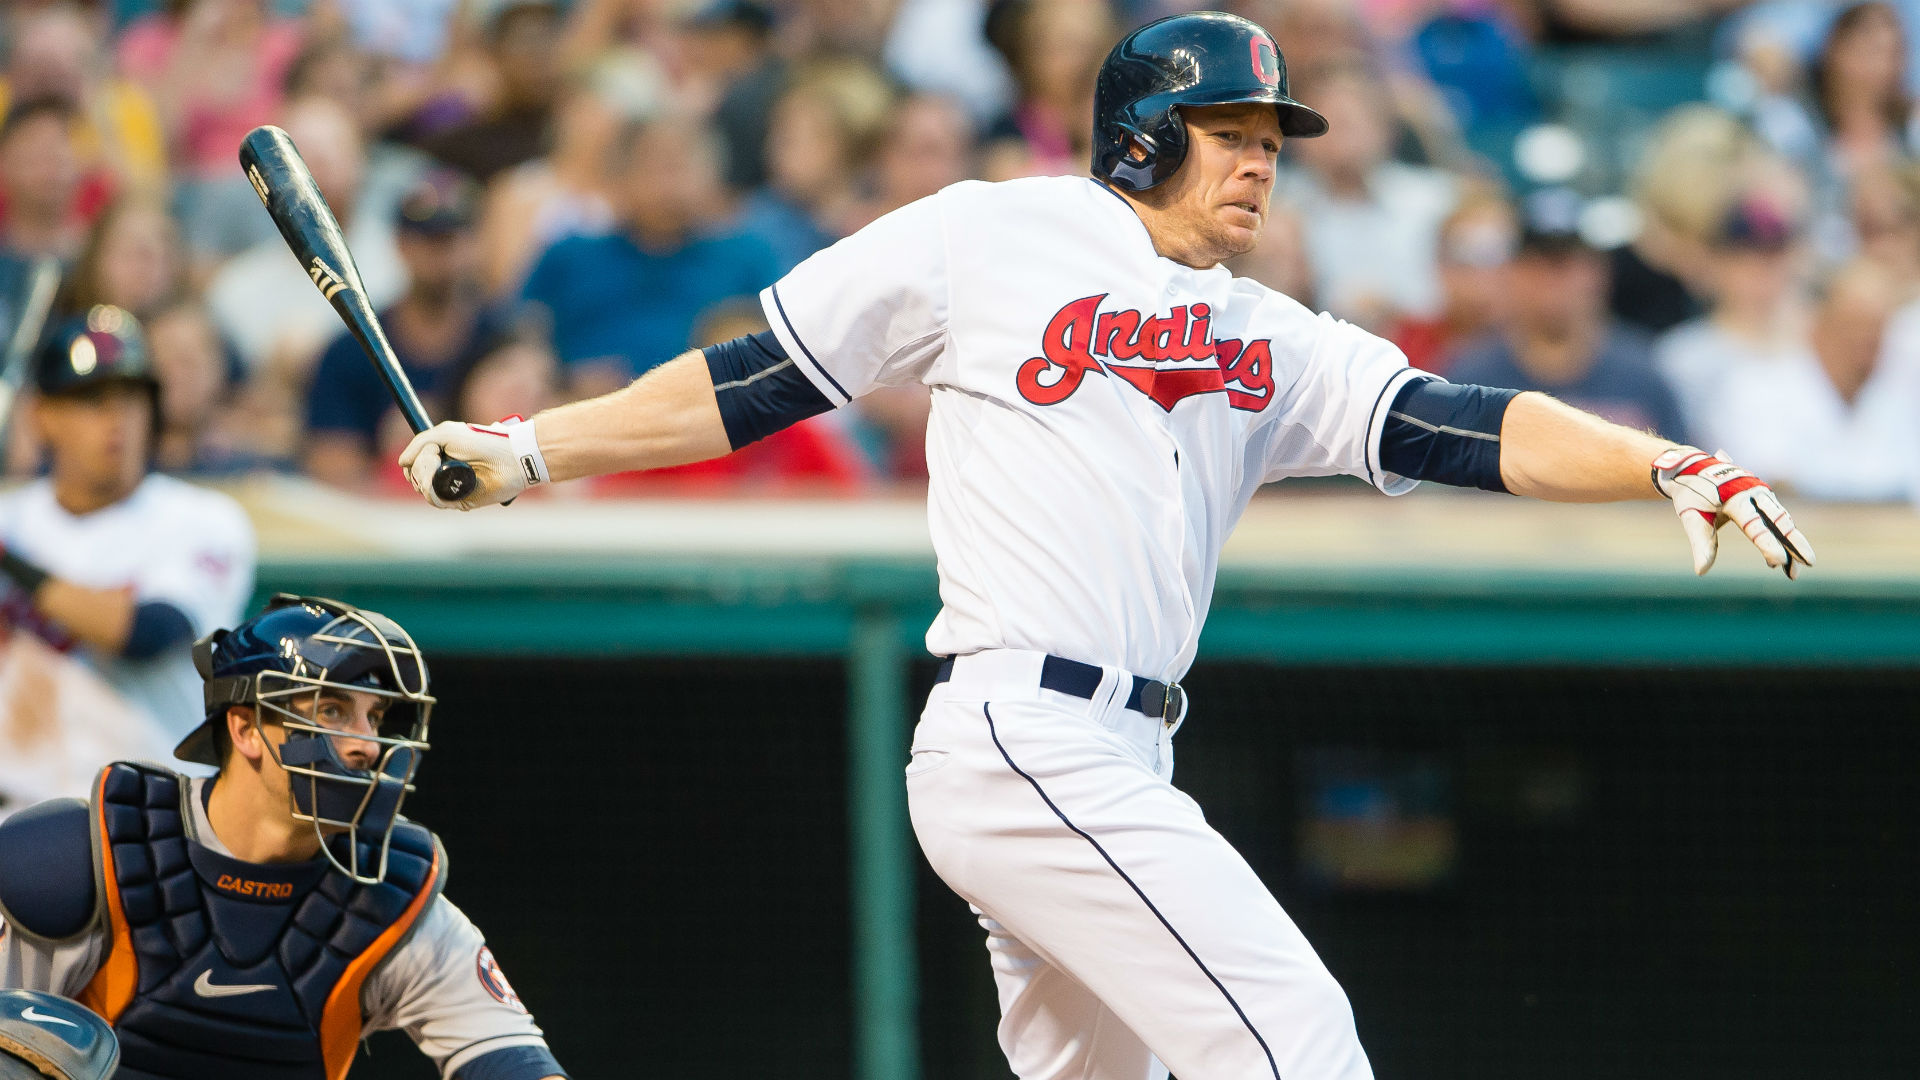 Cardinals trade for Brandon Moss from Indians